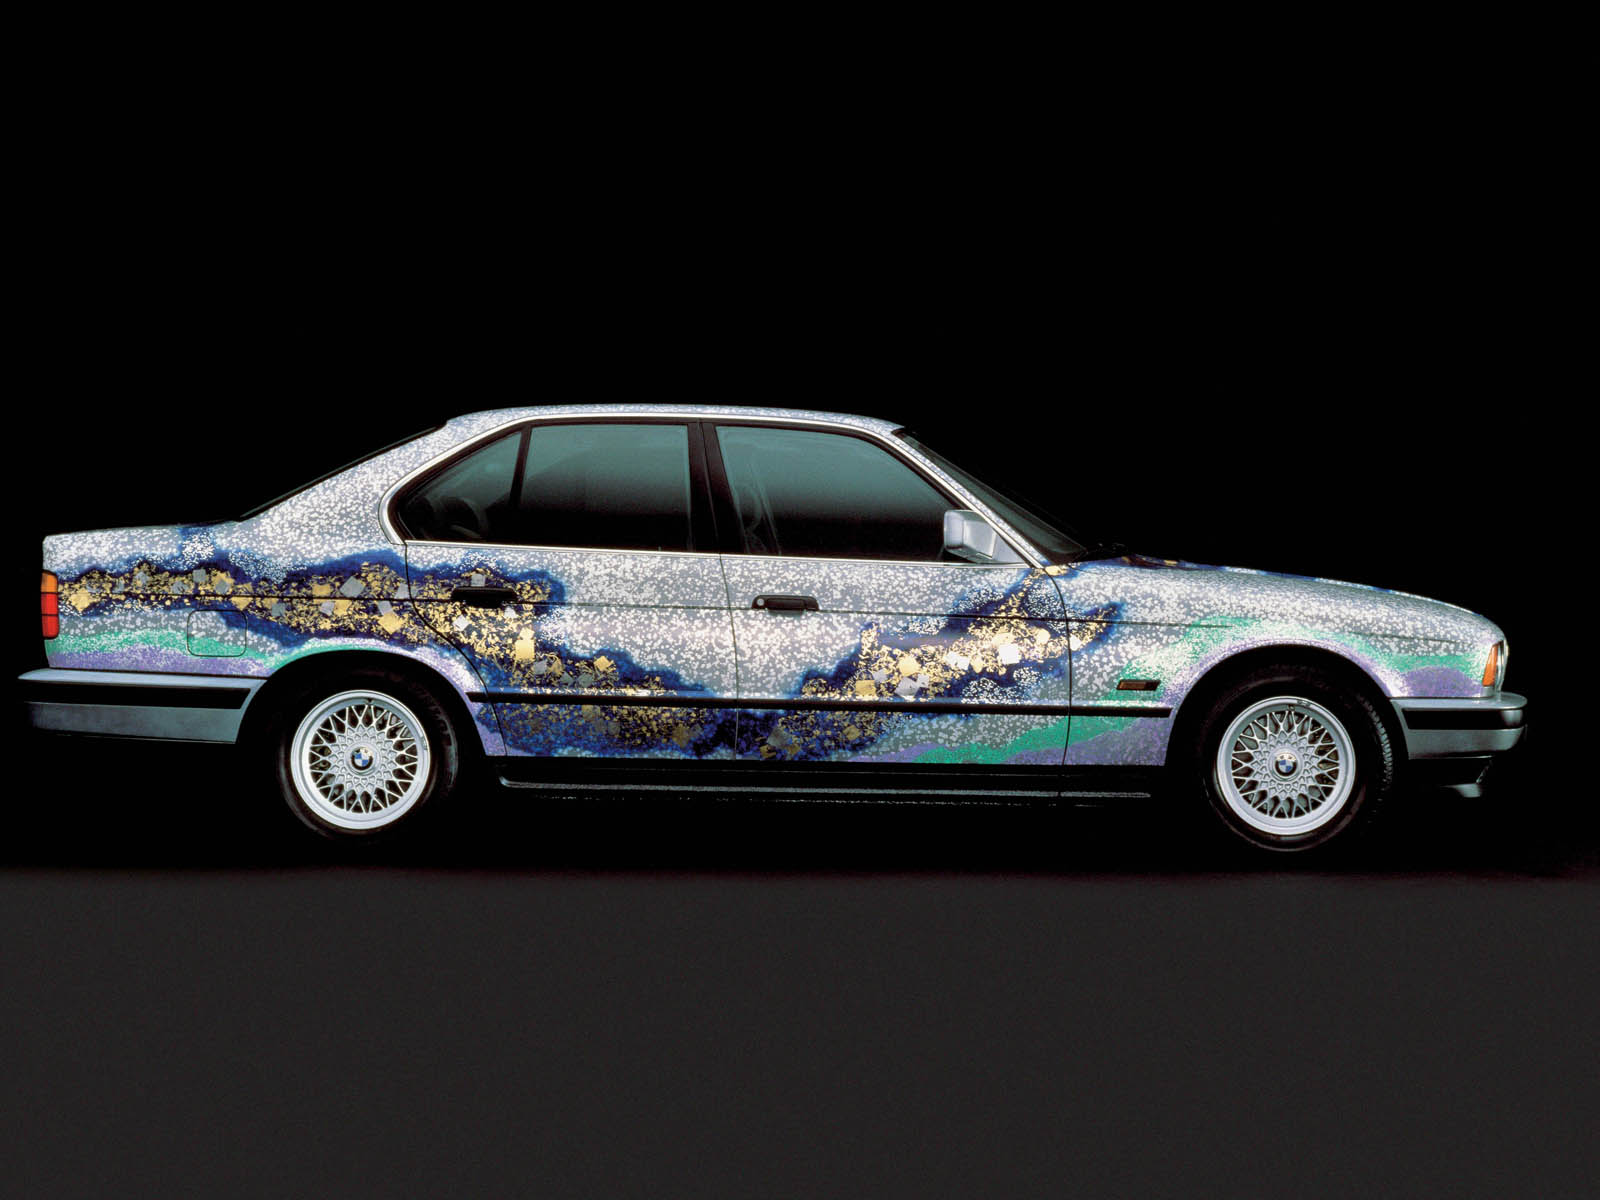 BMW E34 535i Art car